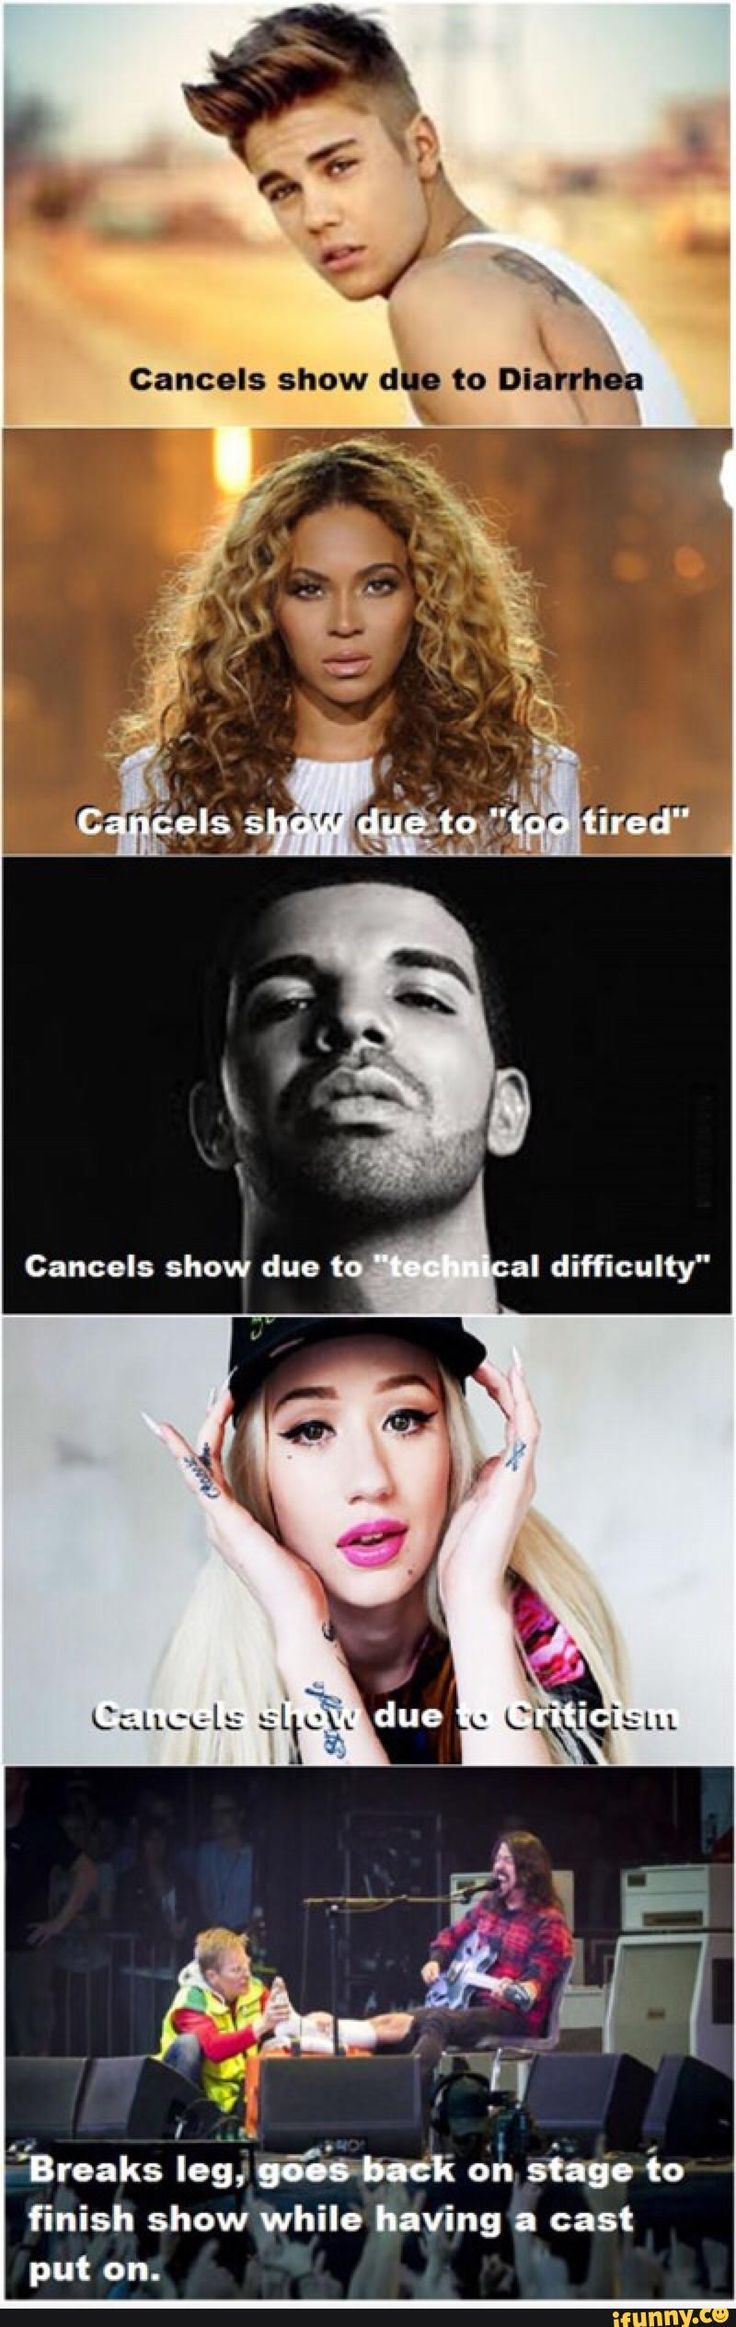 The difference between pop stars and artists